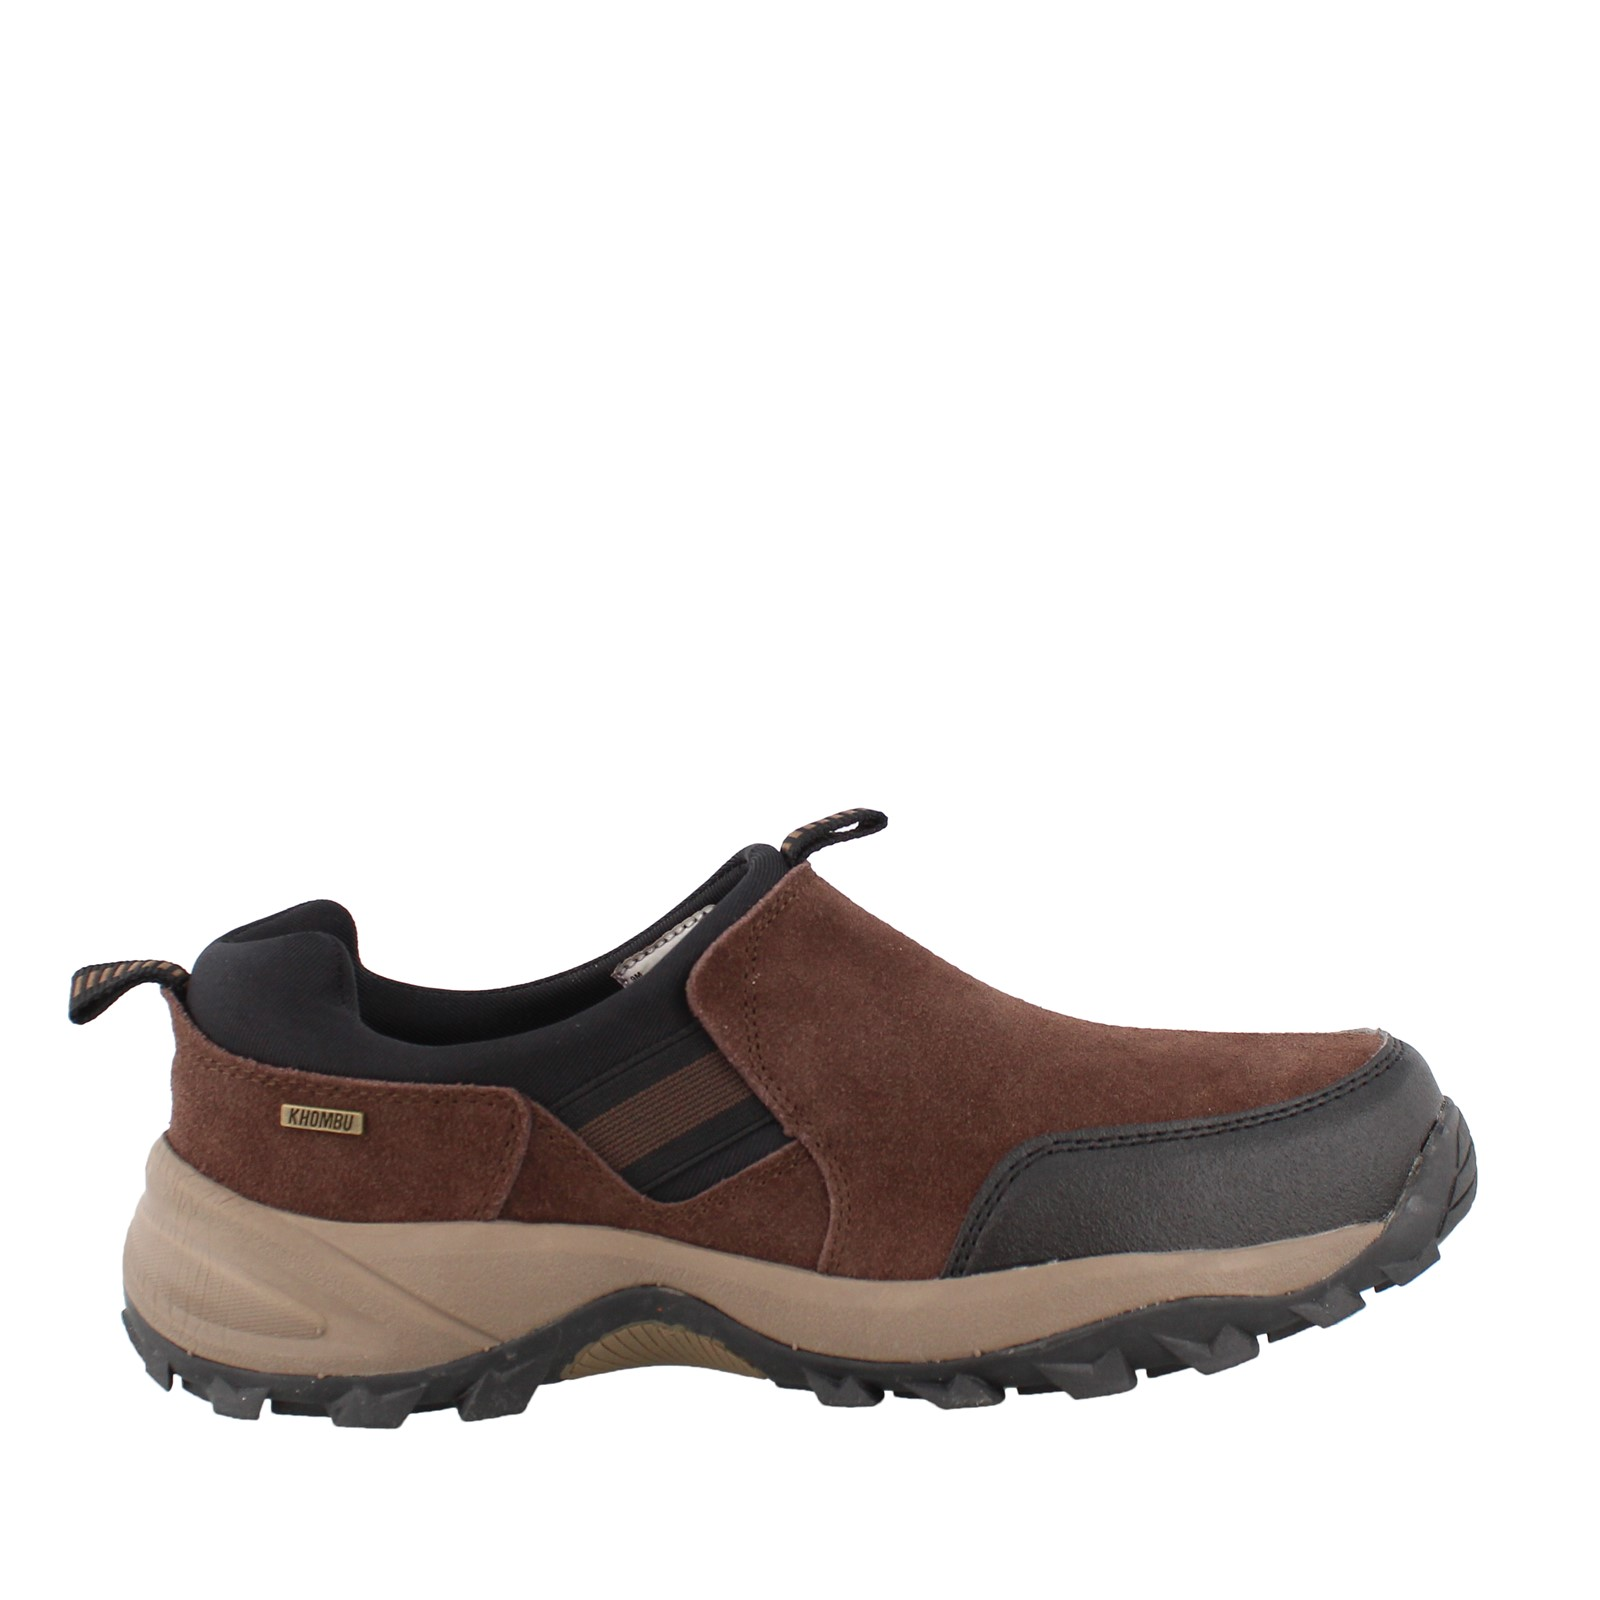 Men's Khombu, Tyler Slip on Shoes